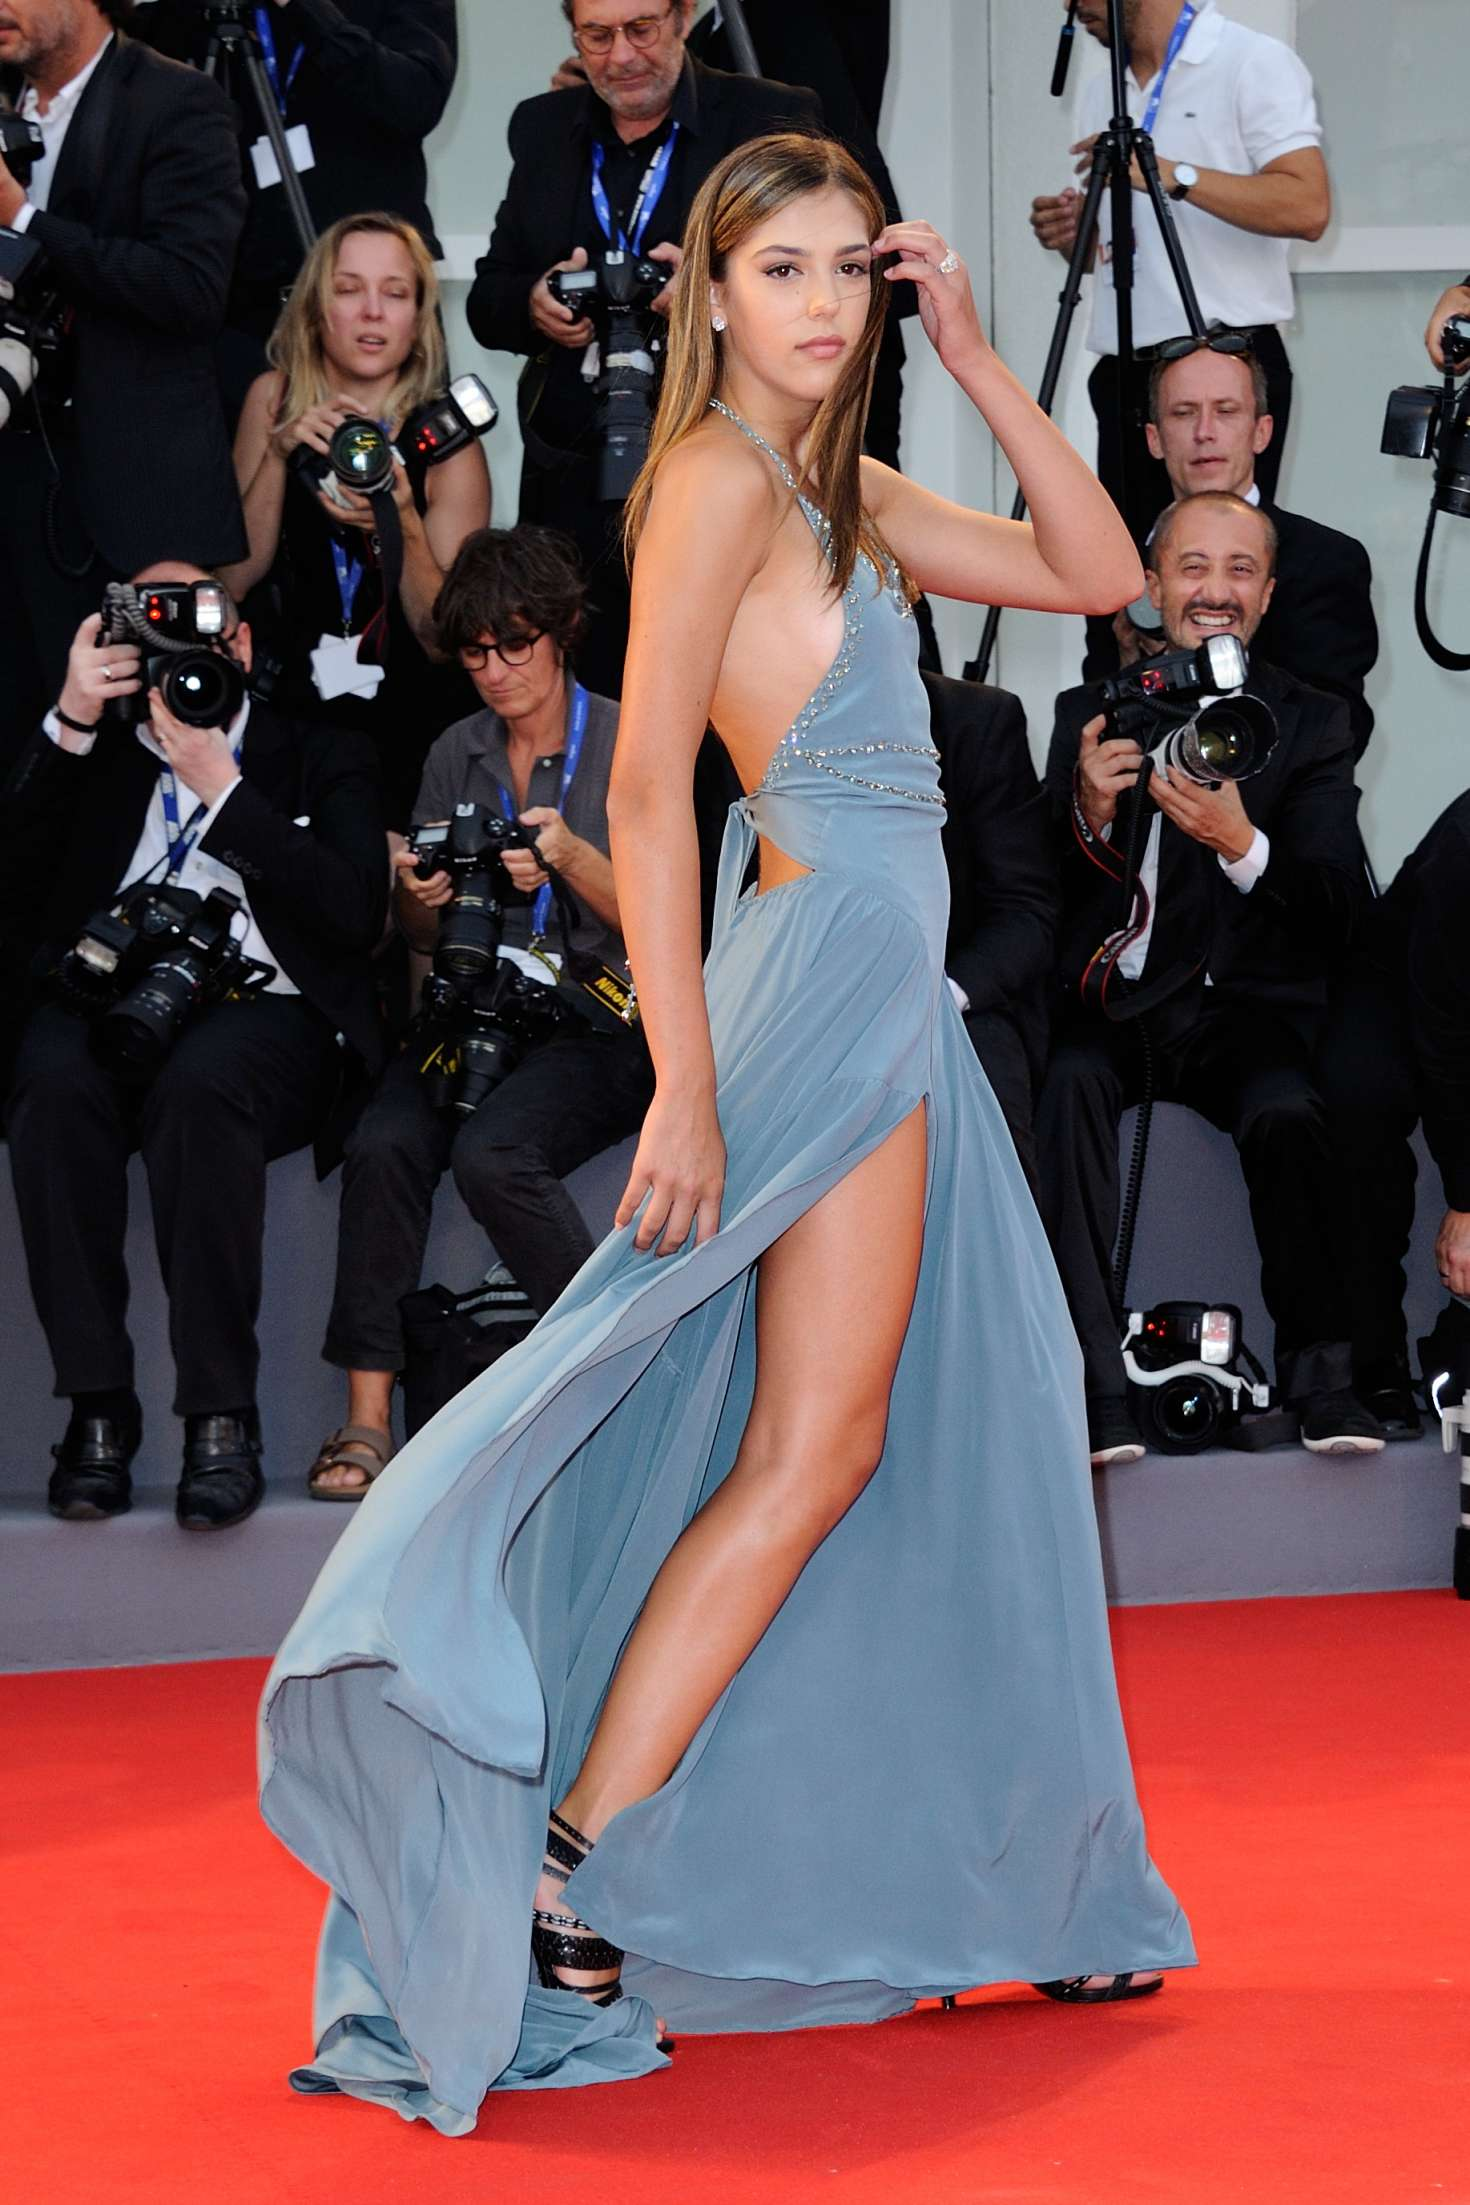 Sistine Rose Stallone Hacksaw Ridge Premiere At 73rd Venice Film Festival In Italy Indian